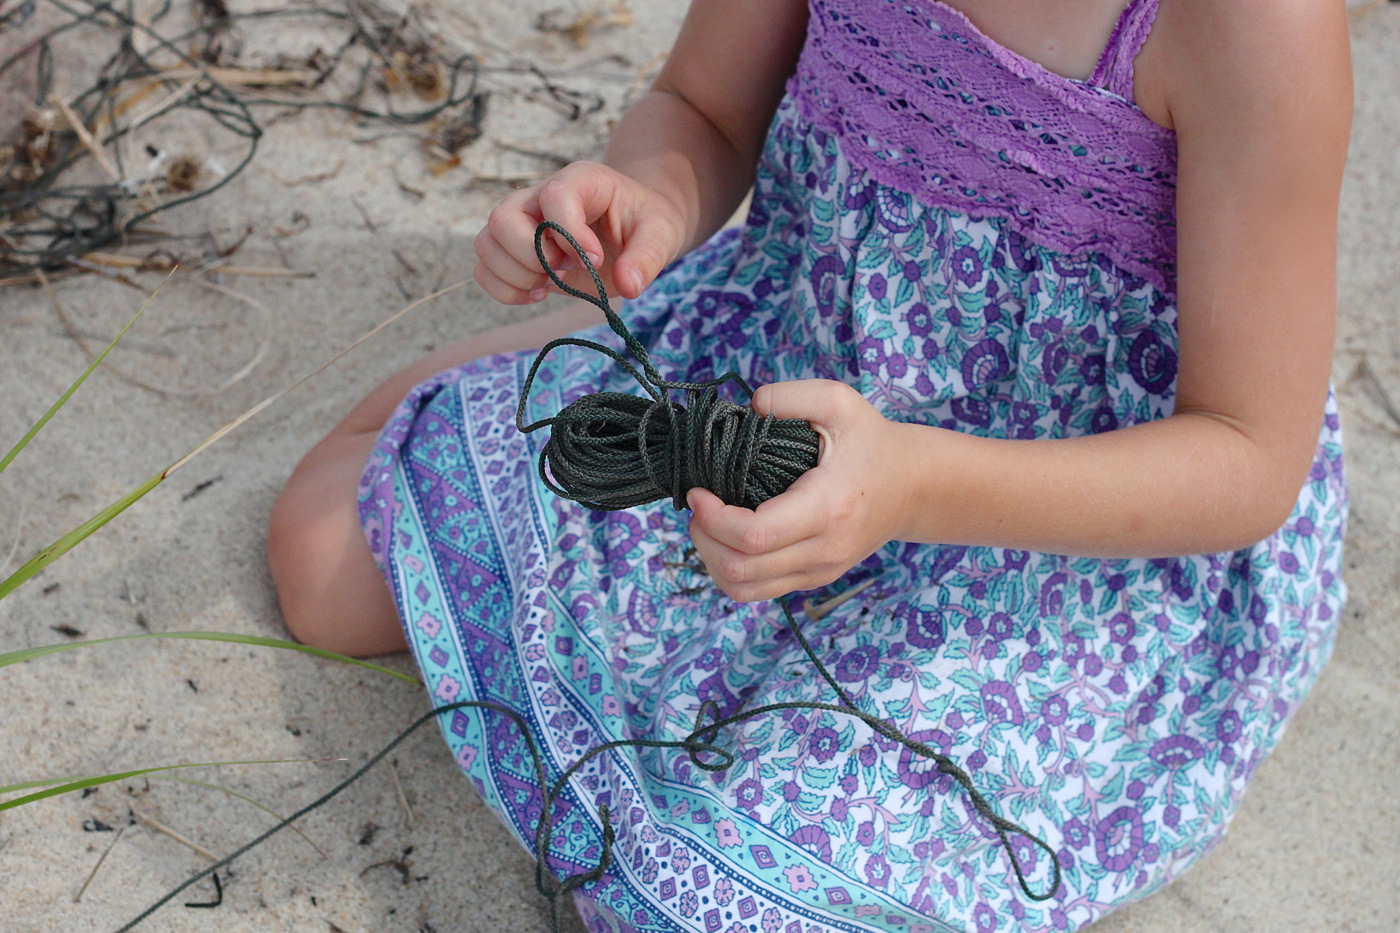 beach twine knits by Marnie Campbell, photo by Justine Hand. wrapping twine